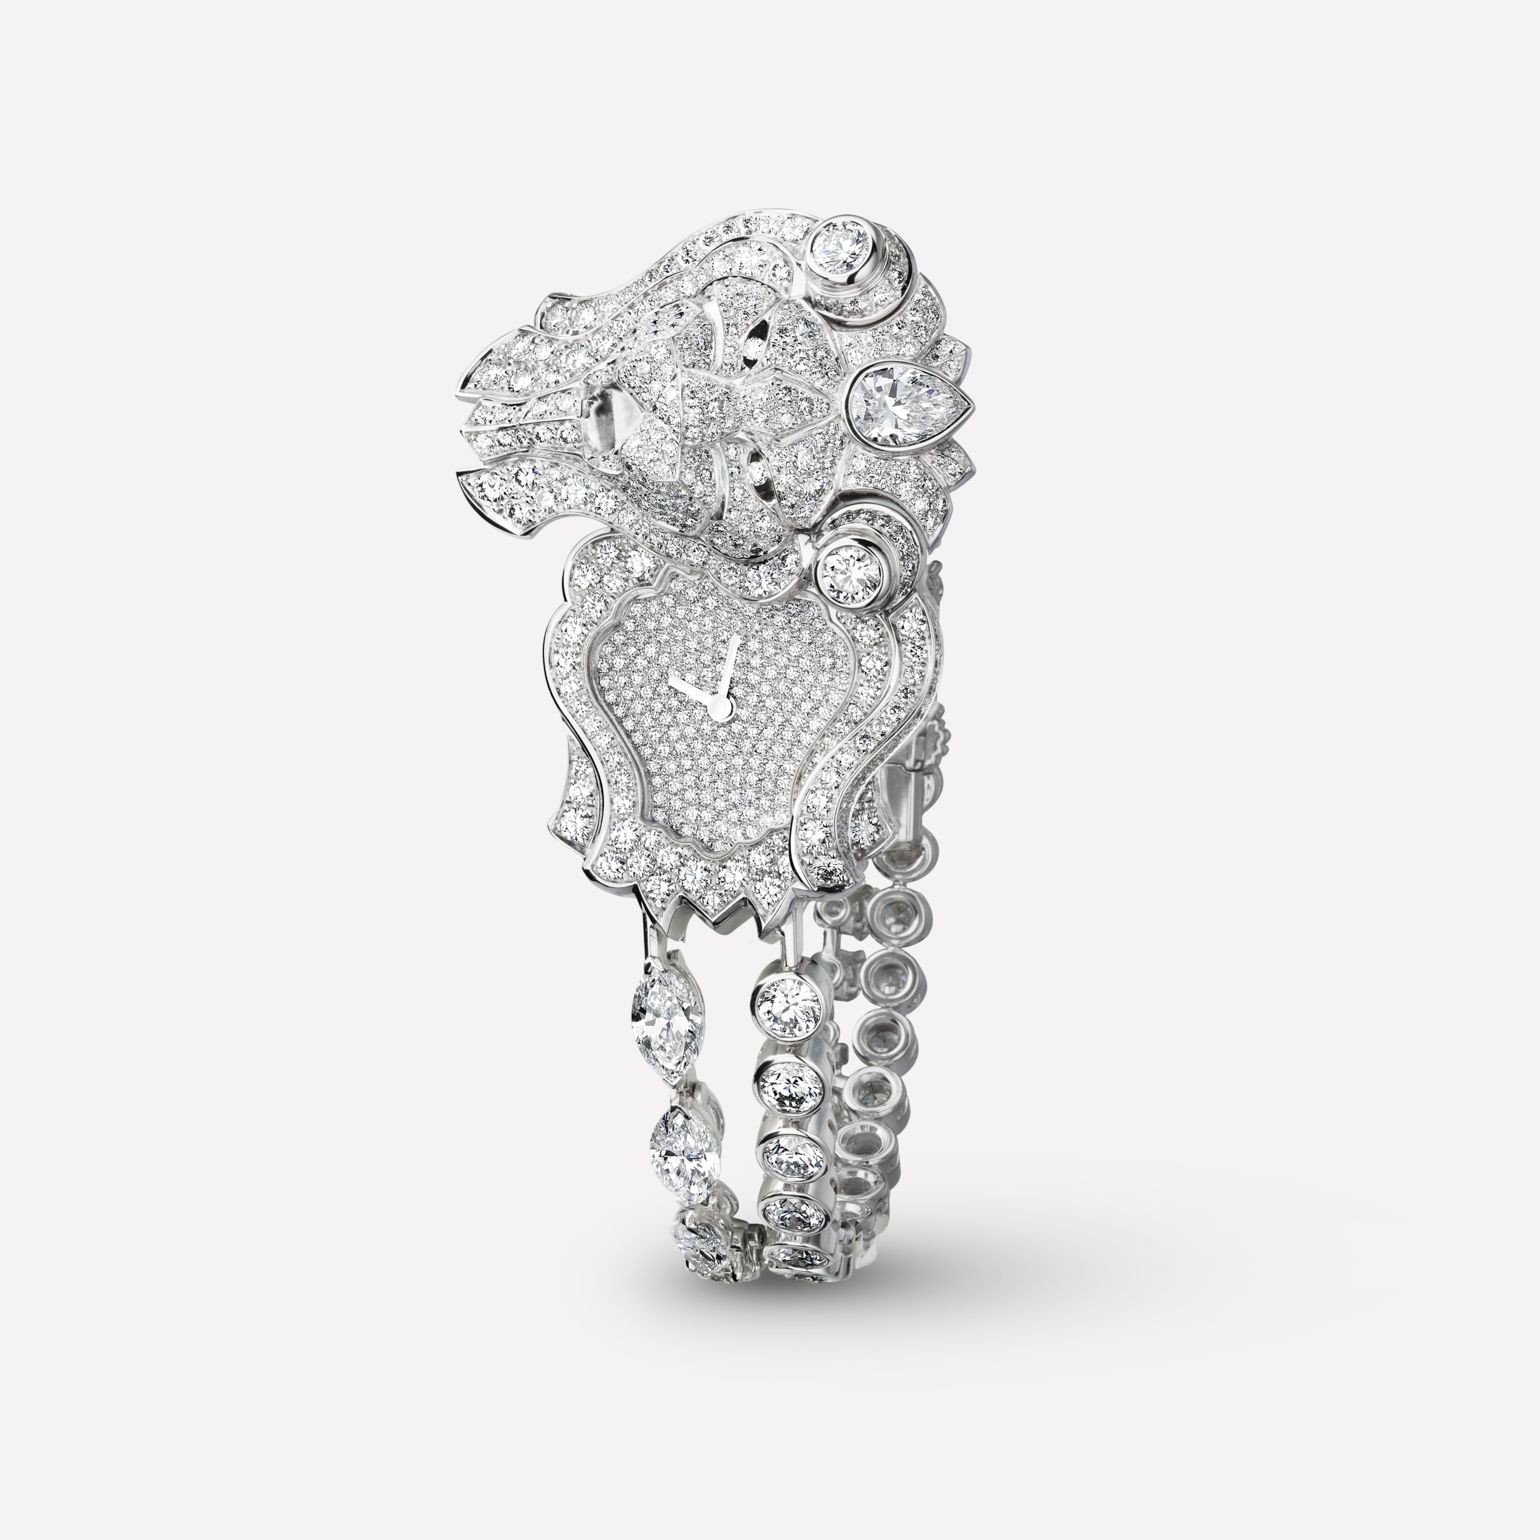 Sous le Signe du Lion Jewelry Watch Secret watch with lion motif in 18K white gold and diamonds with diamond bracelet